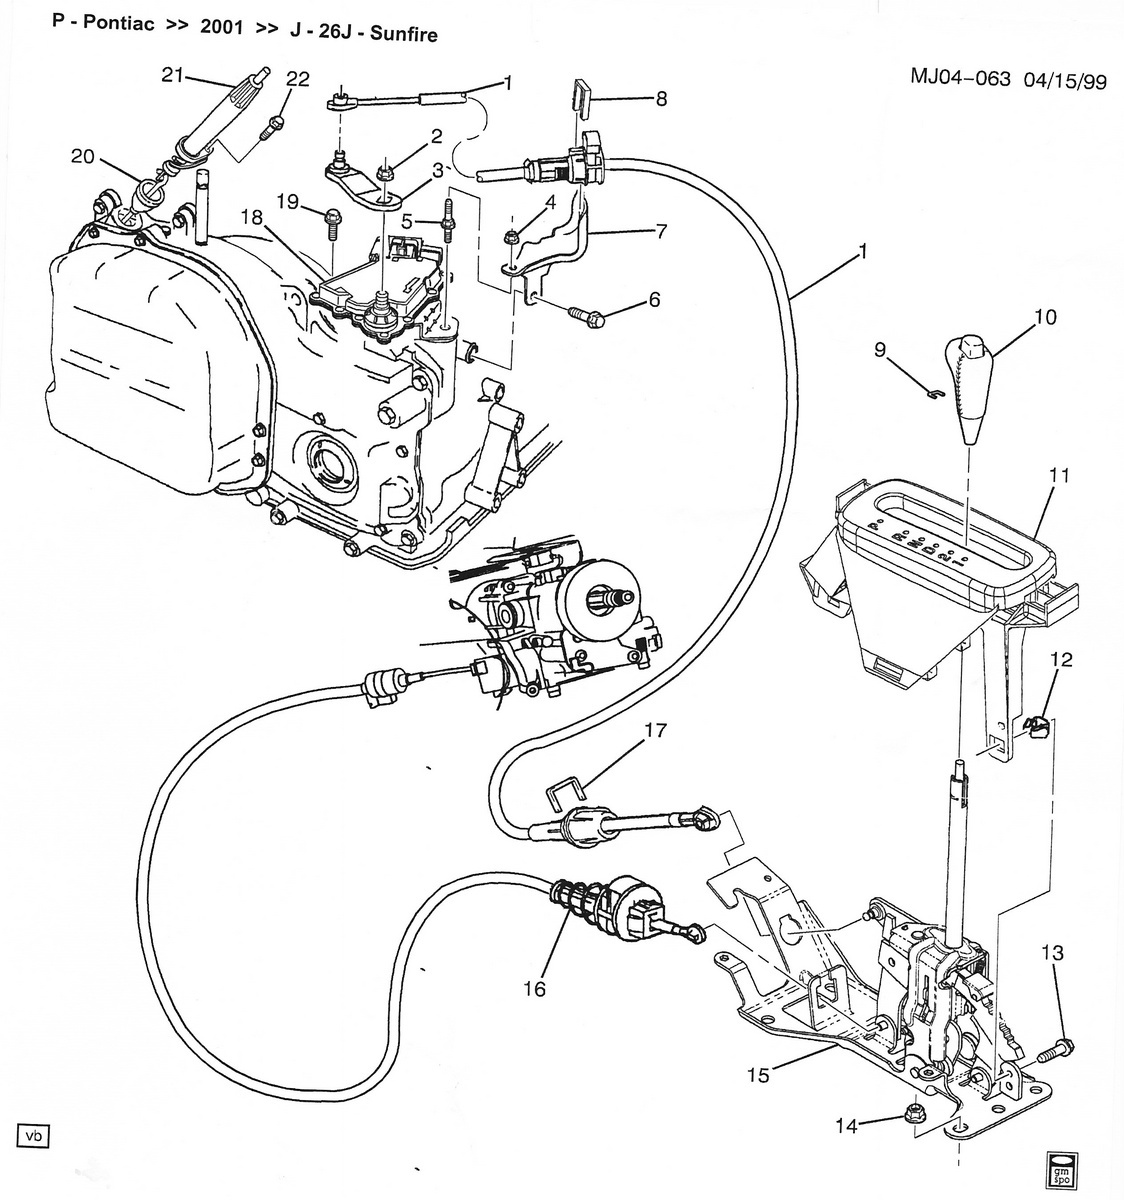 2002 Chevy Trailblazer Intake Manifold Diagram